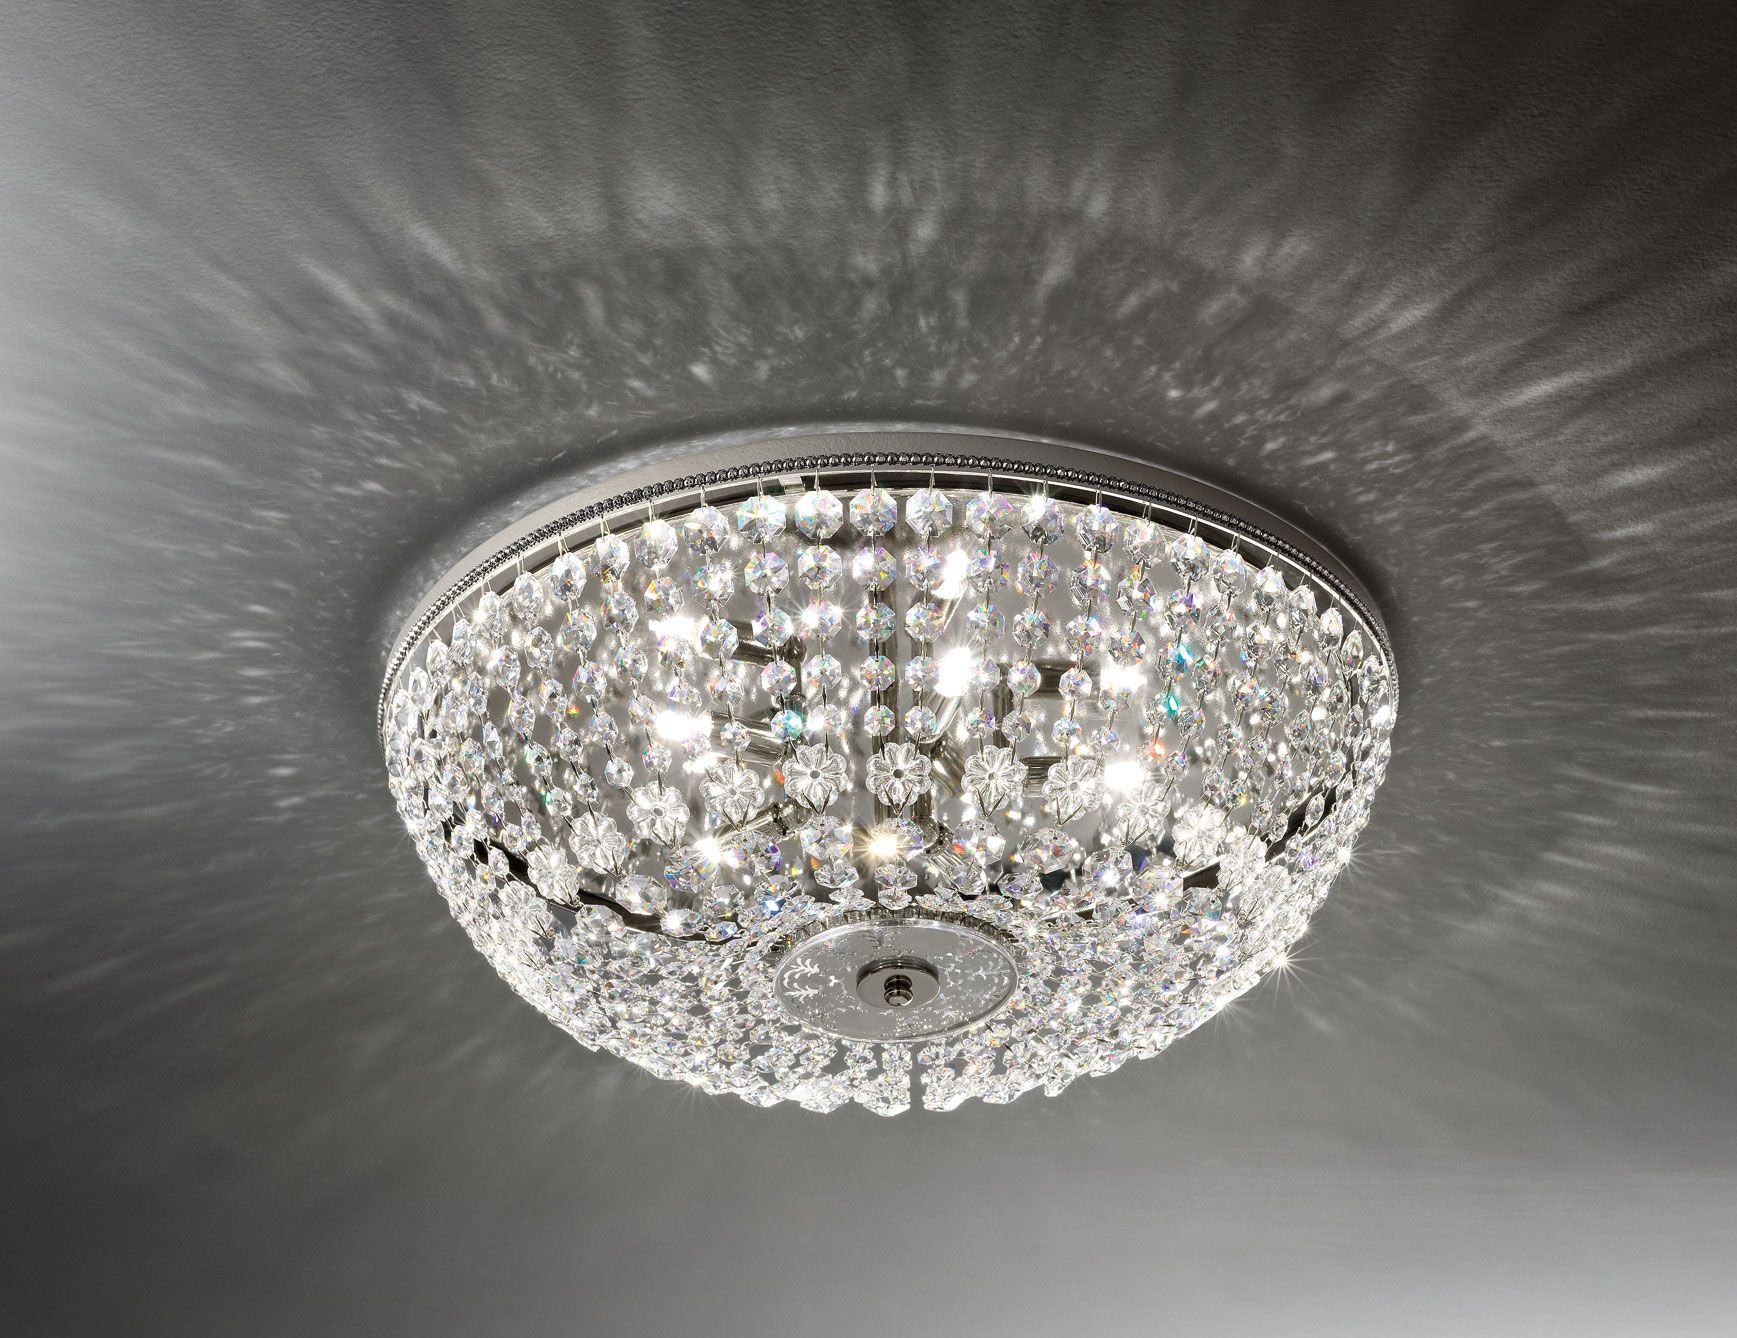 Bathroom Light Fixtures With Crystals swarovski crystal lighting fixtures for bathroom. | upstairs hall